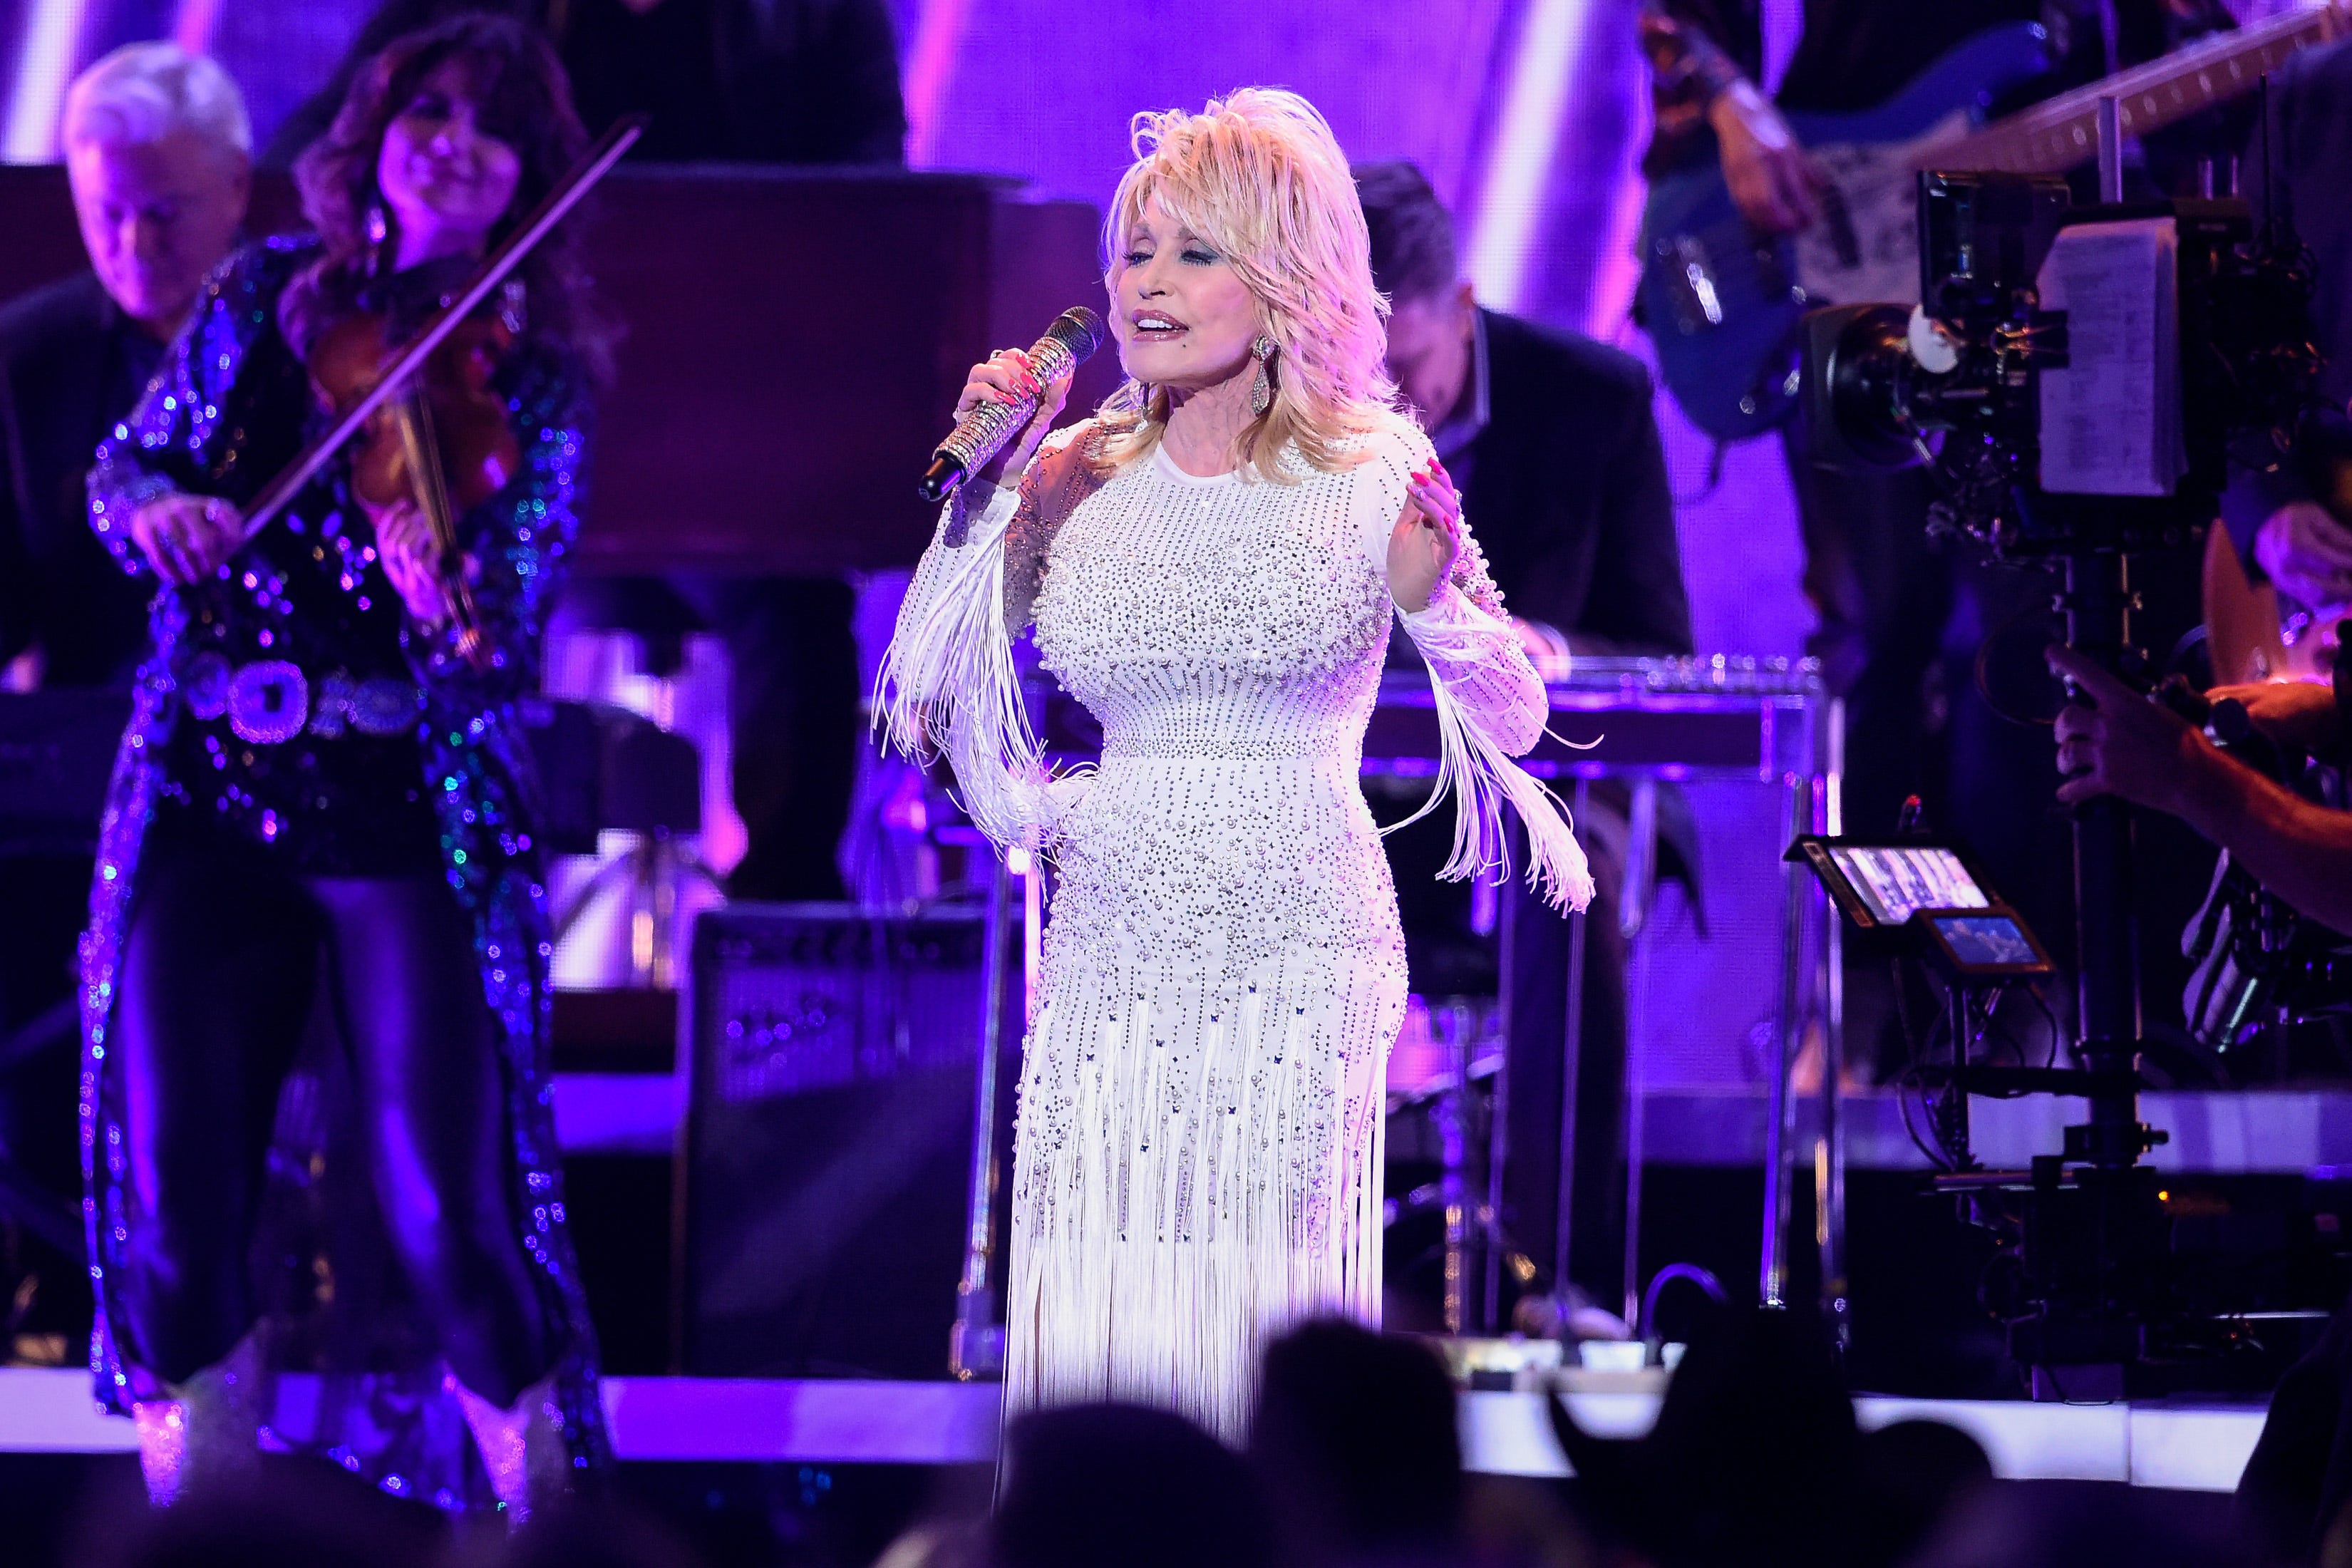 We ve talked about it : Dolly Parton again teases she  might  pose for Playboy to celebrate turning 75